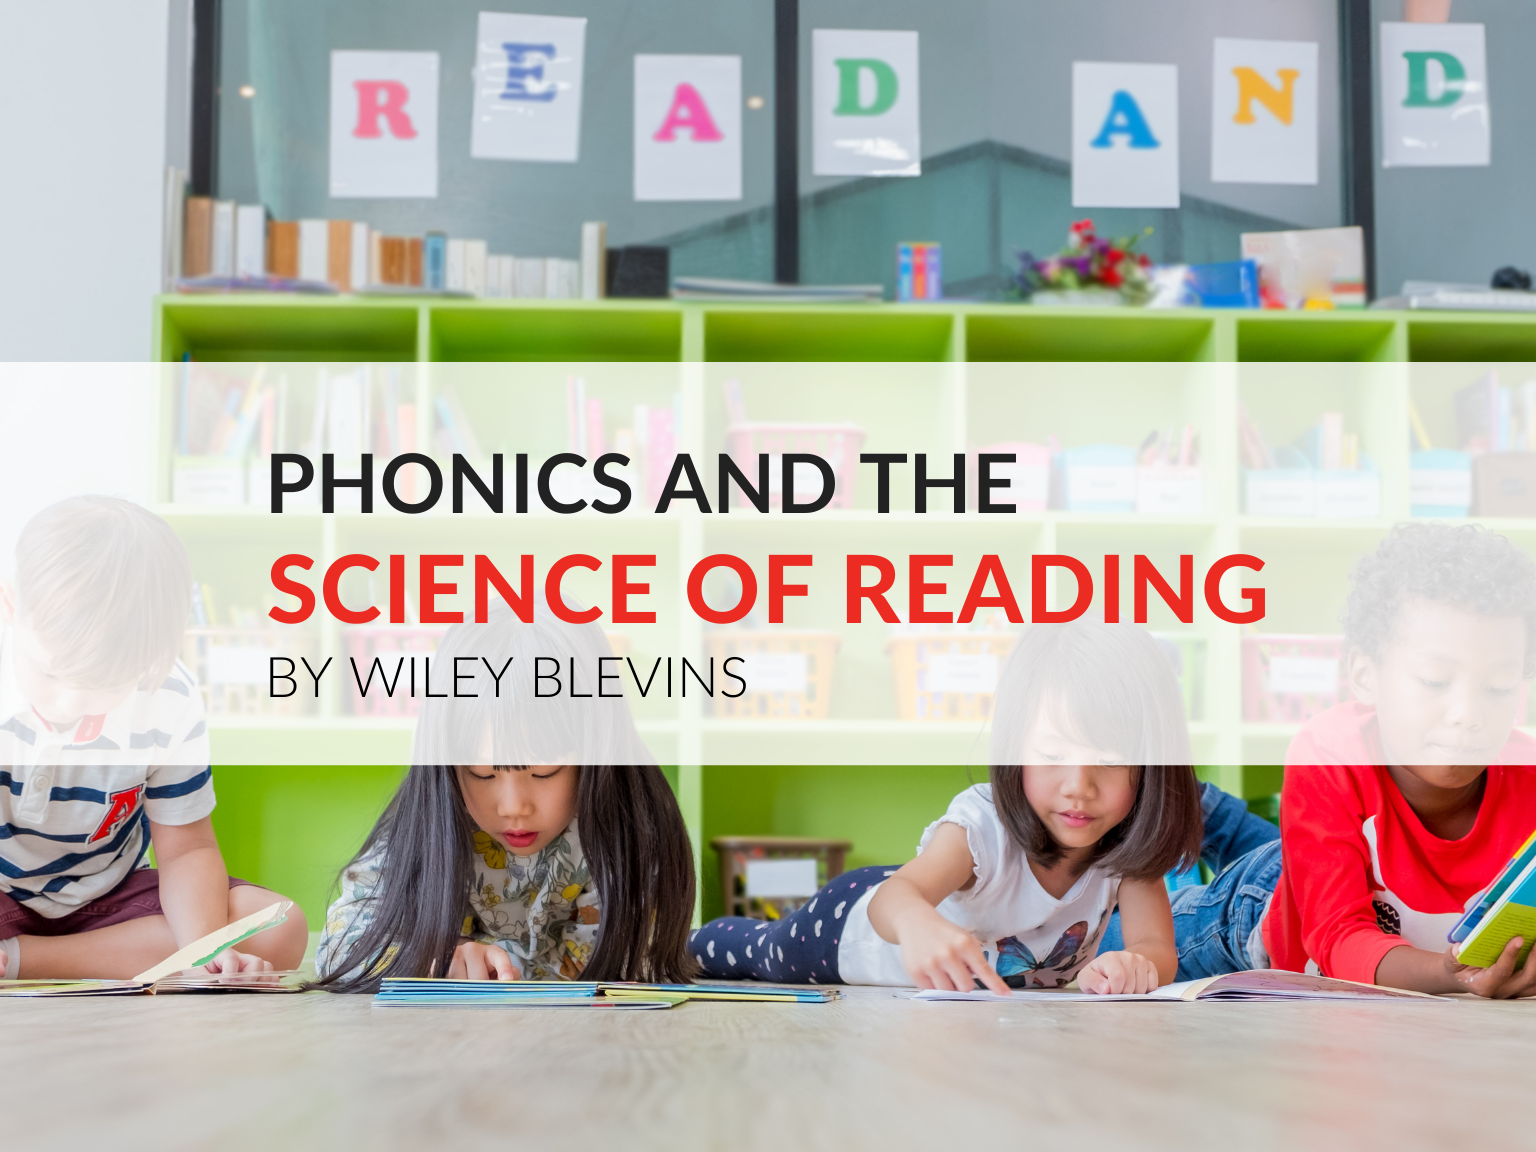 phonics-and-the-science-of-reading-wiley-blevins